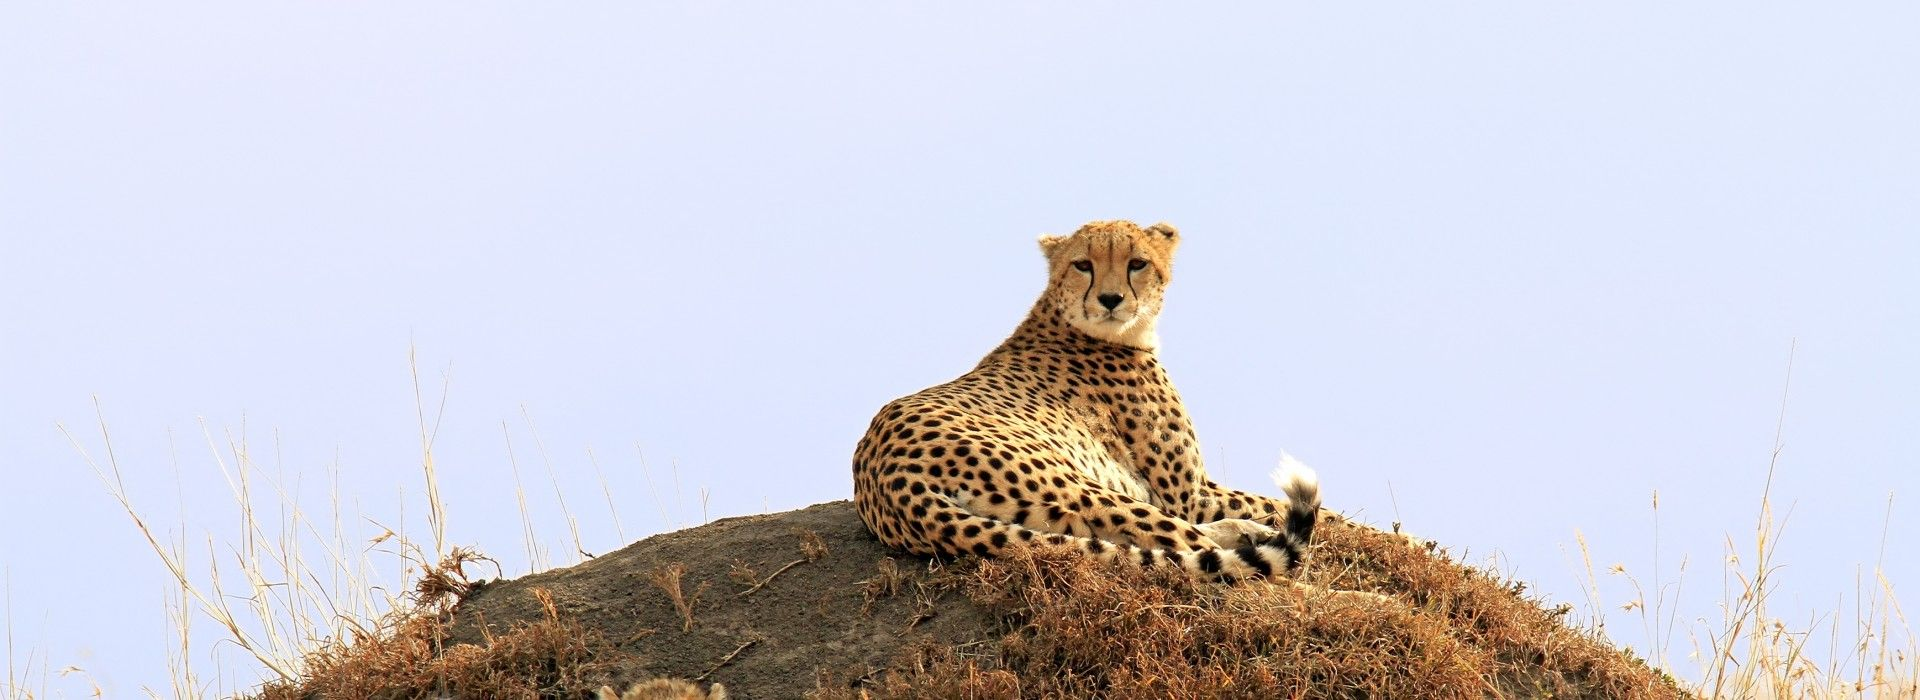 Self-drive or vehicle rental Tours in Africa